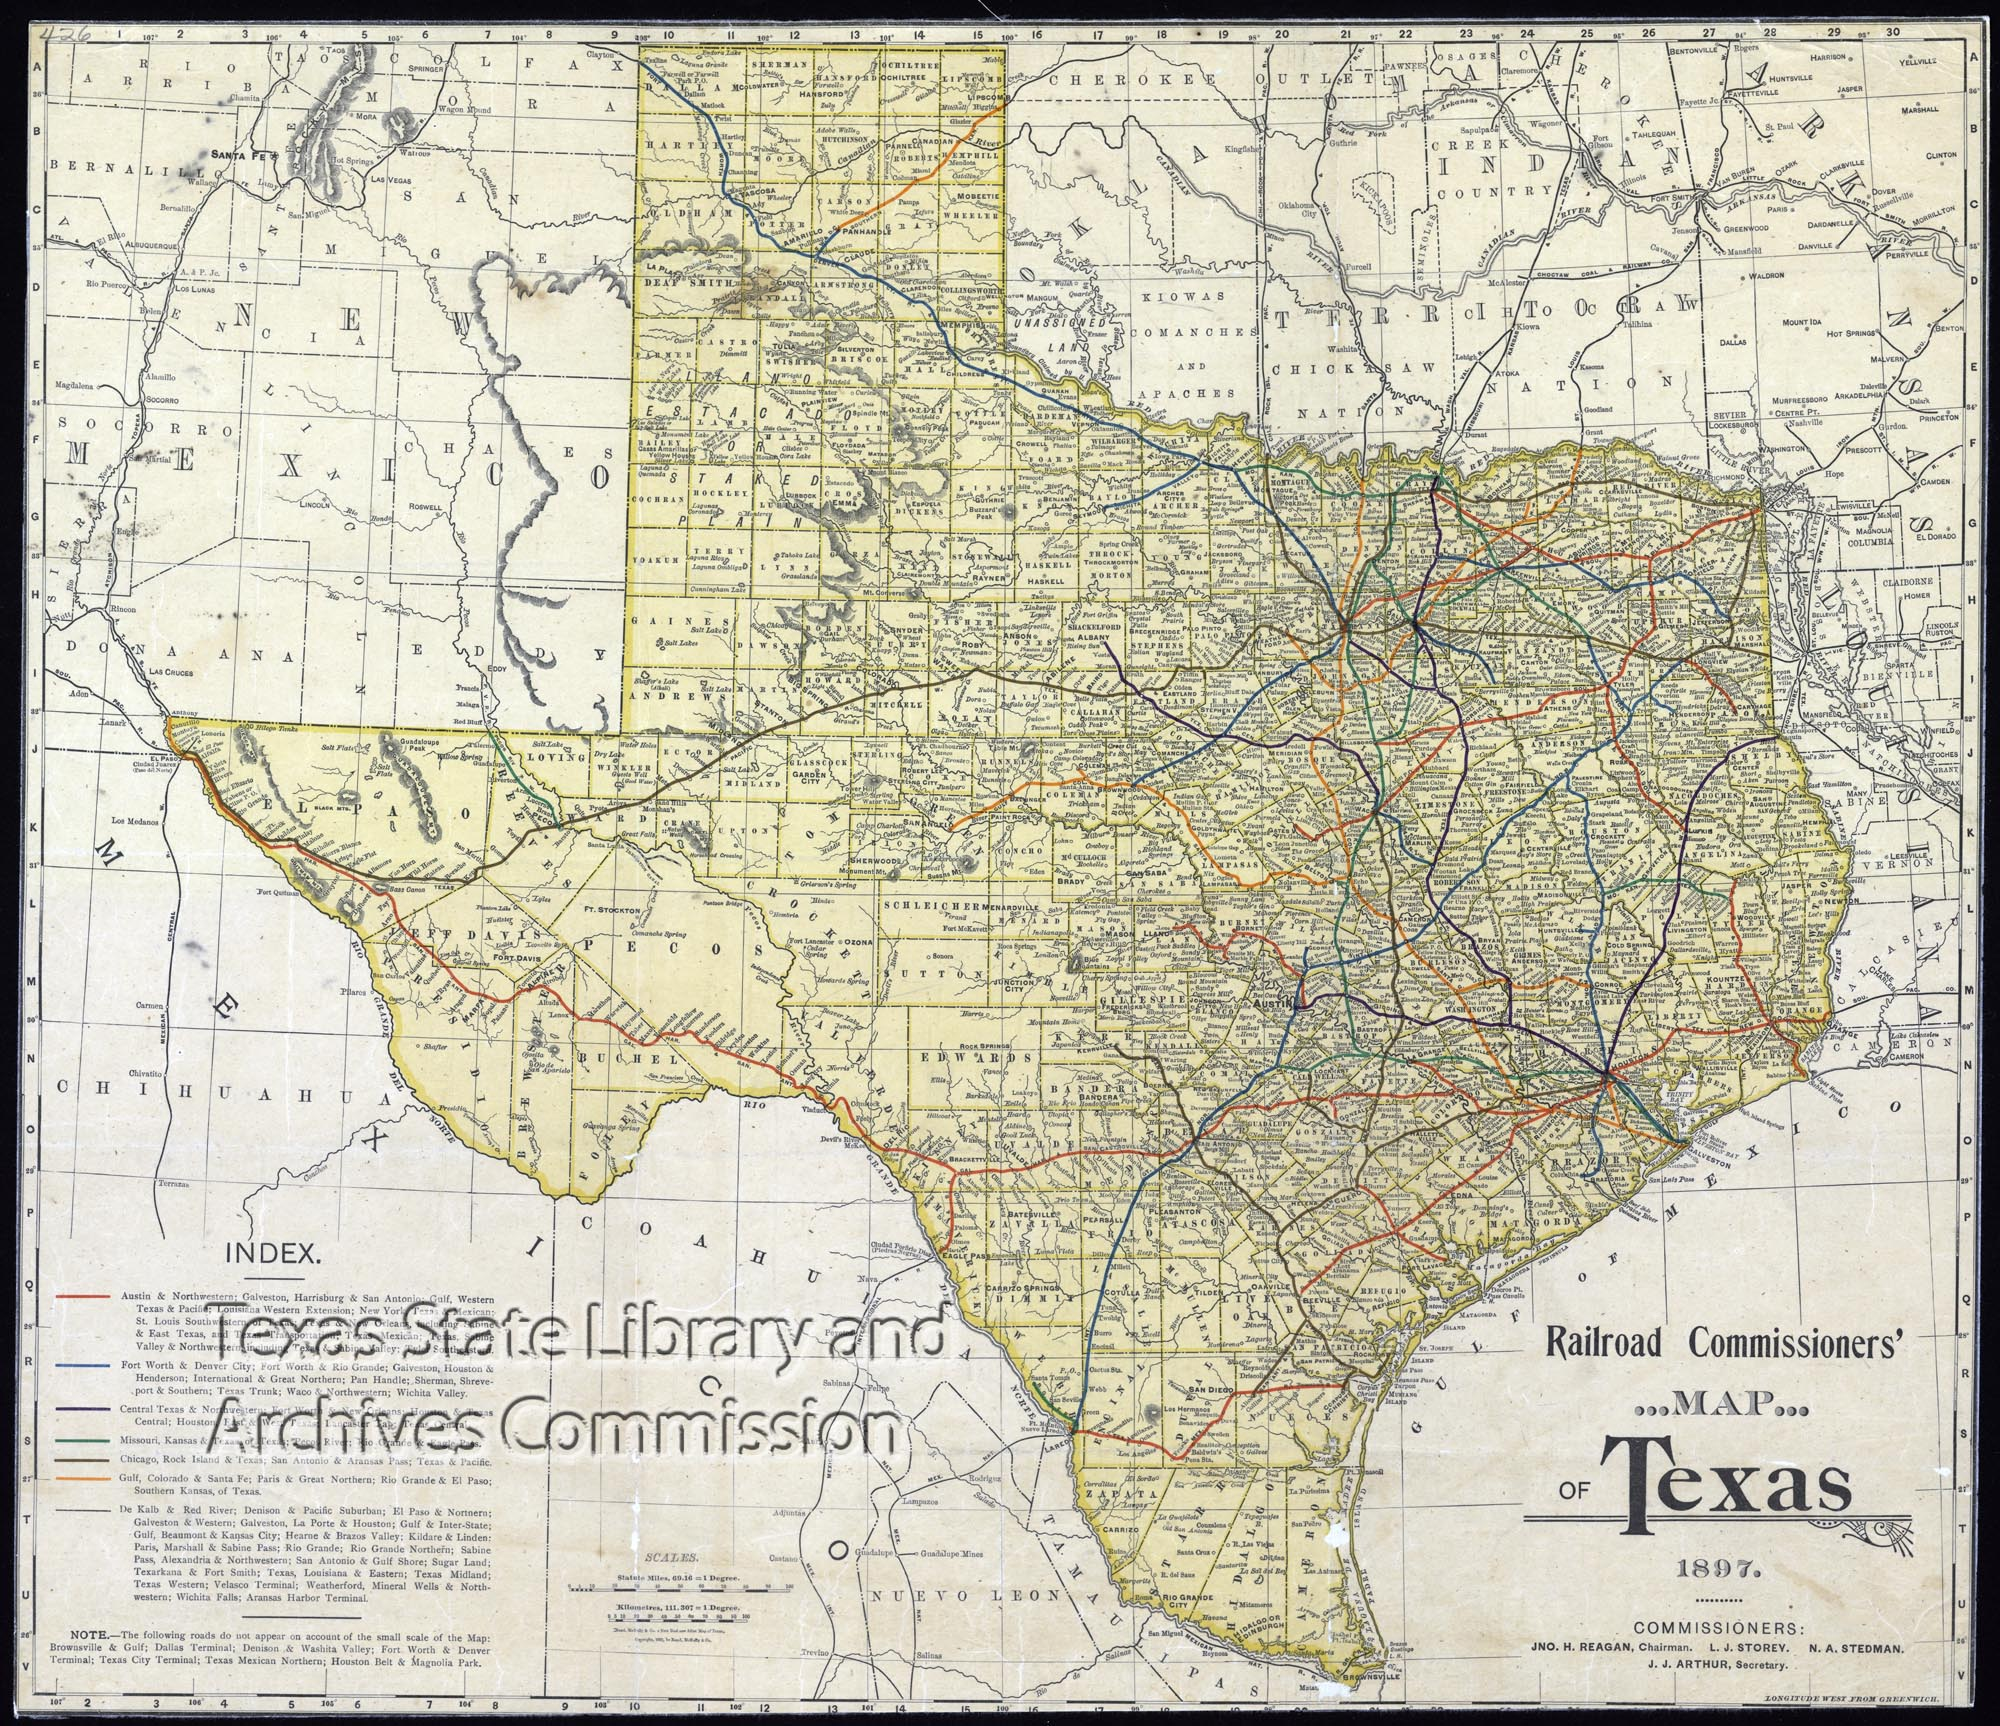 Railroad Map Of Texas.File Railroad Commissioner S Map Of Texas 27516493413 Jpg